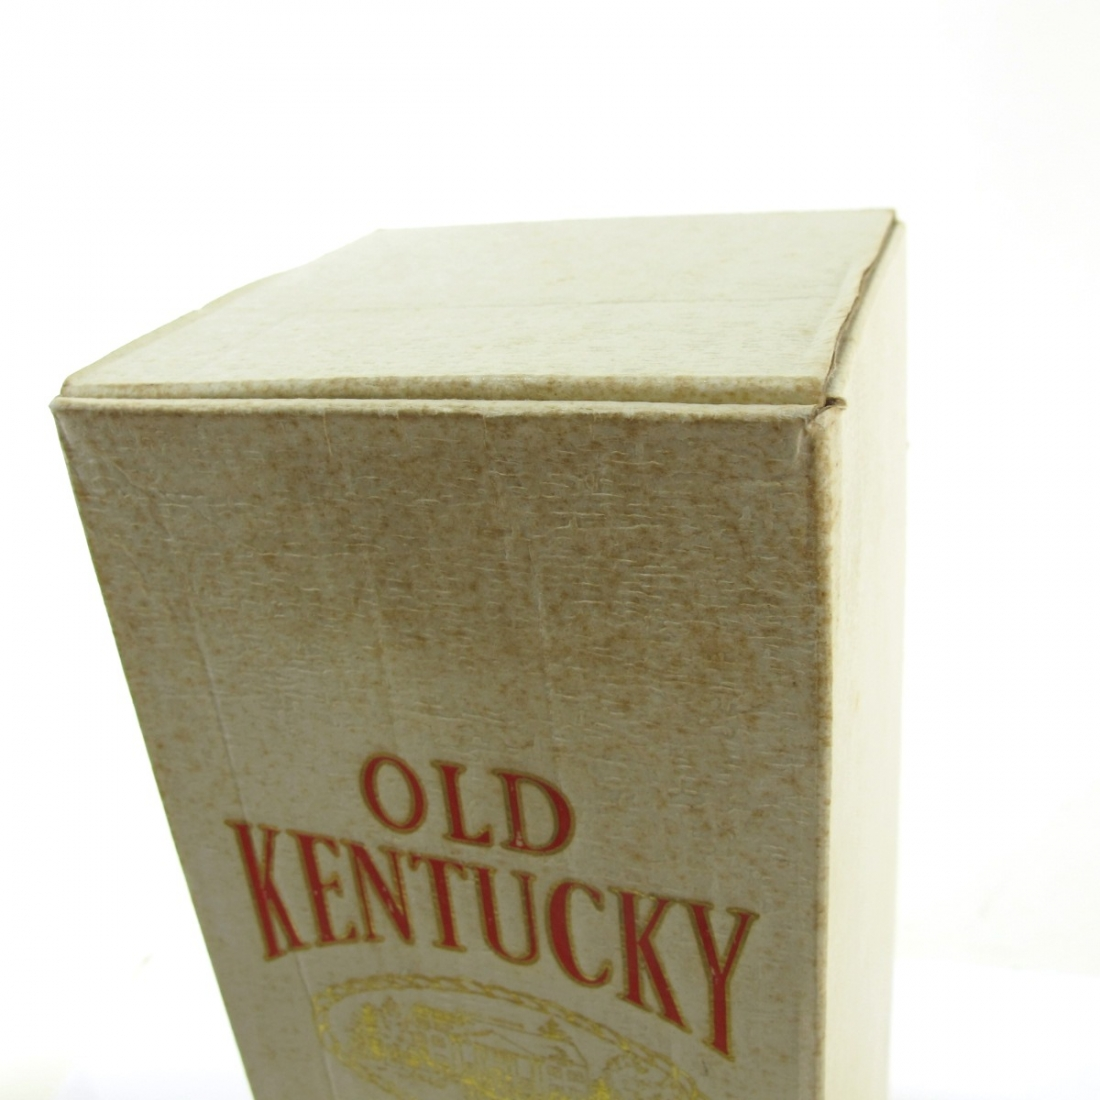 Old Kentucky No.88 Brand 13 Year Old